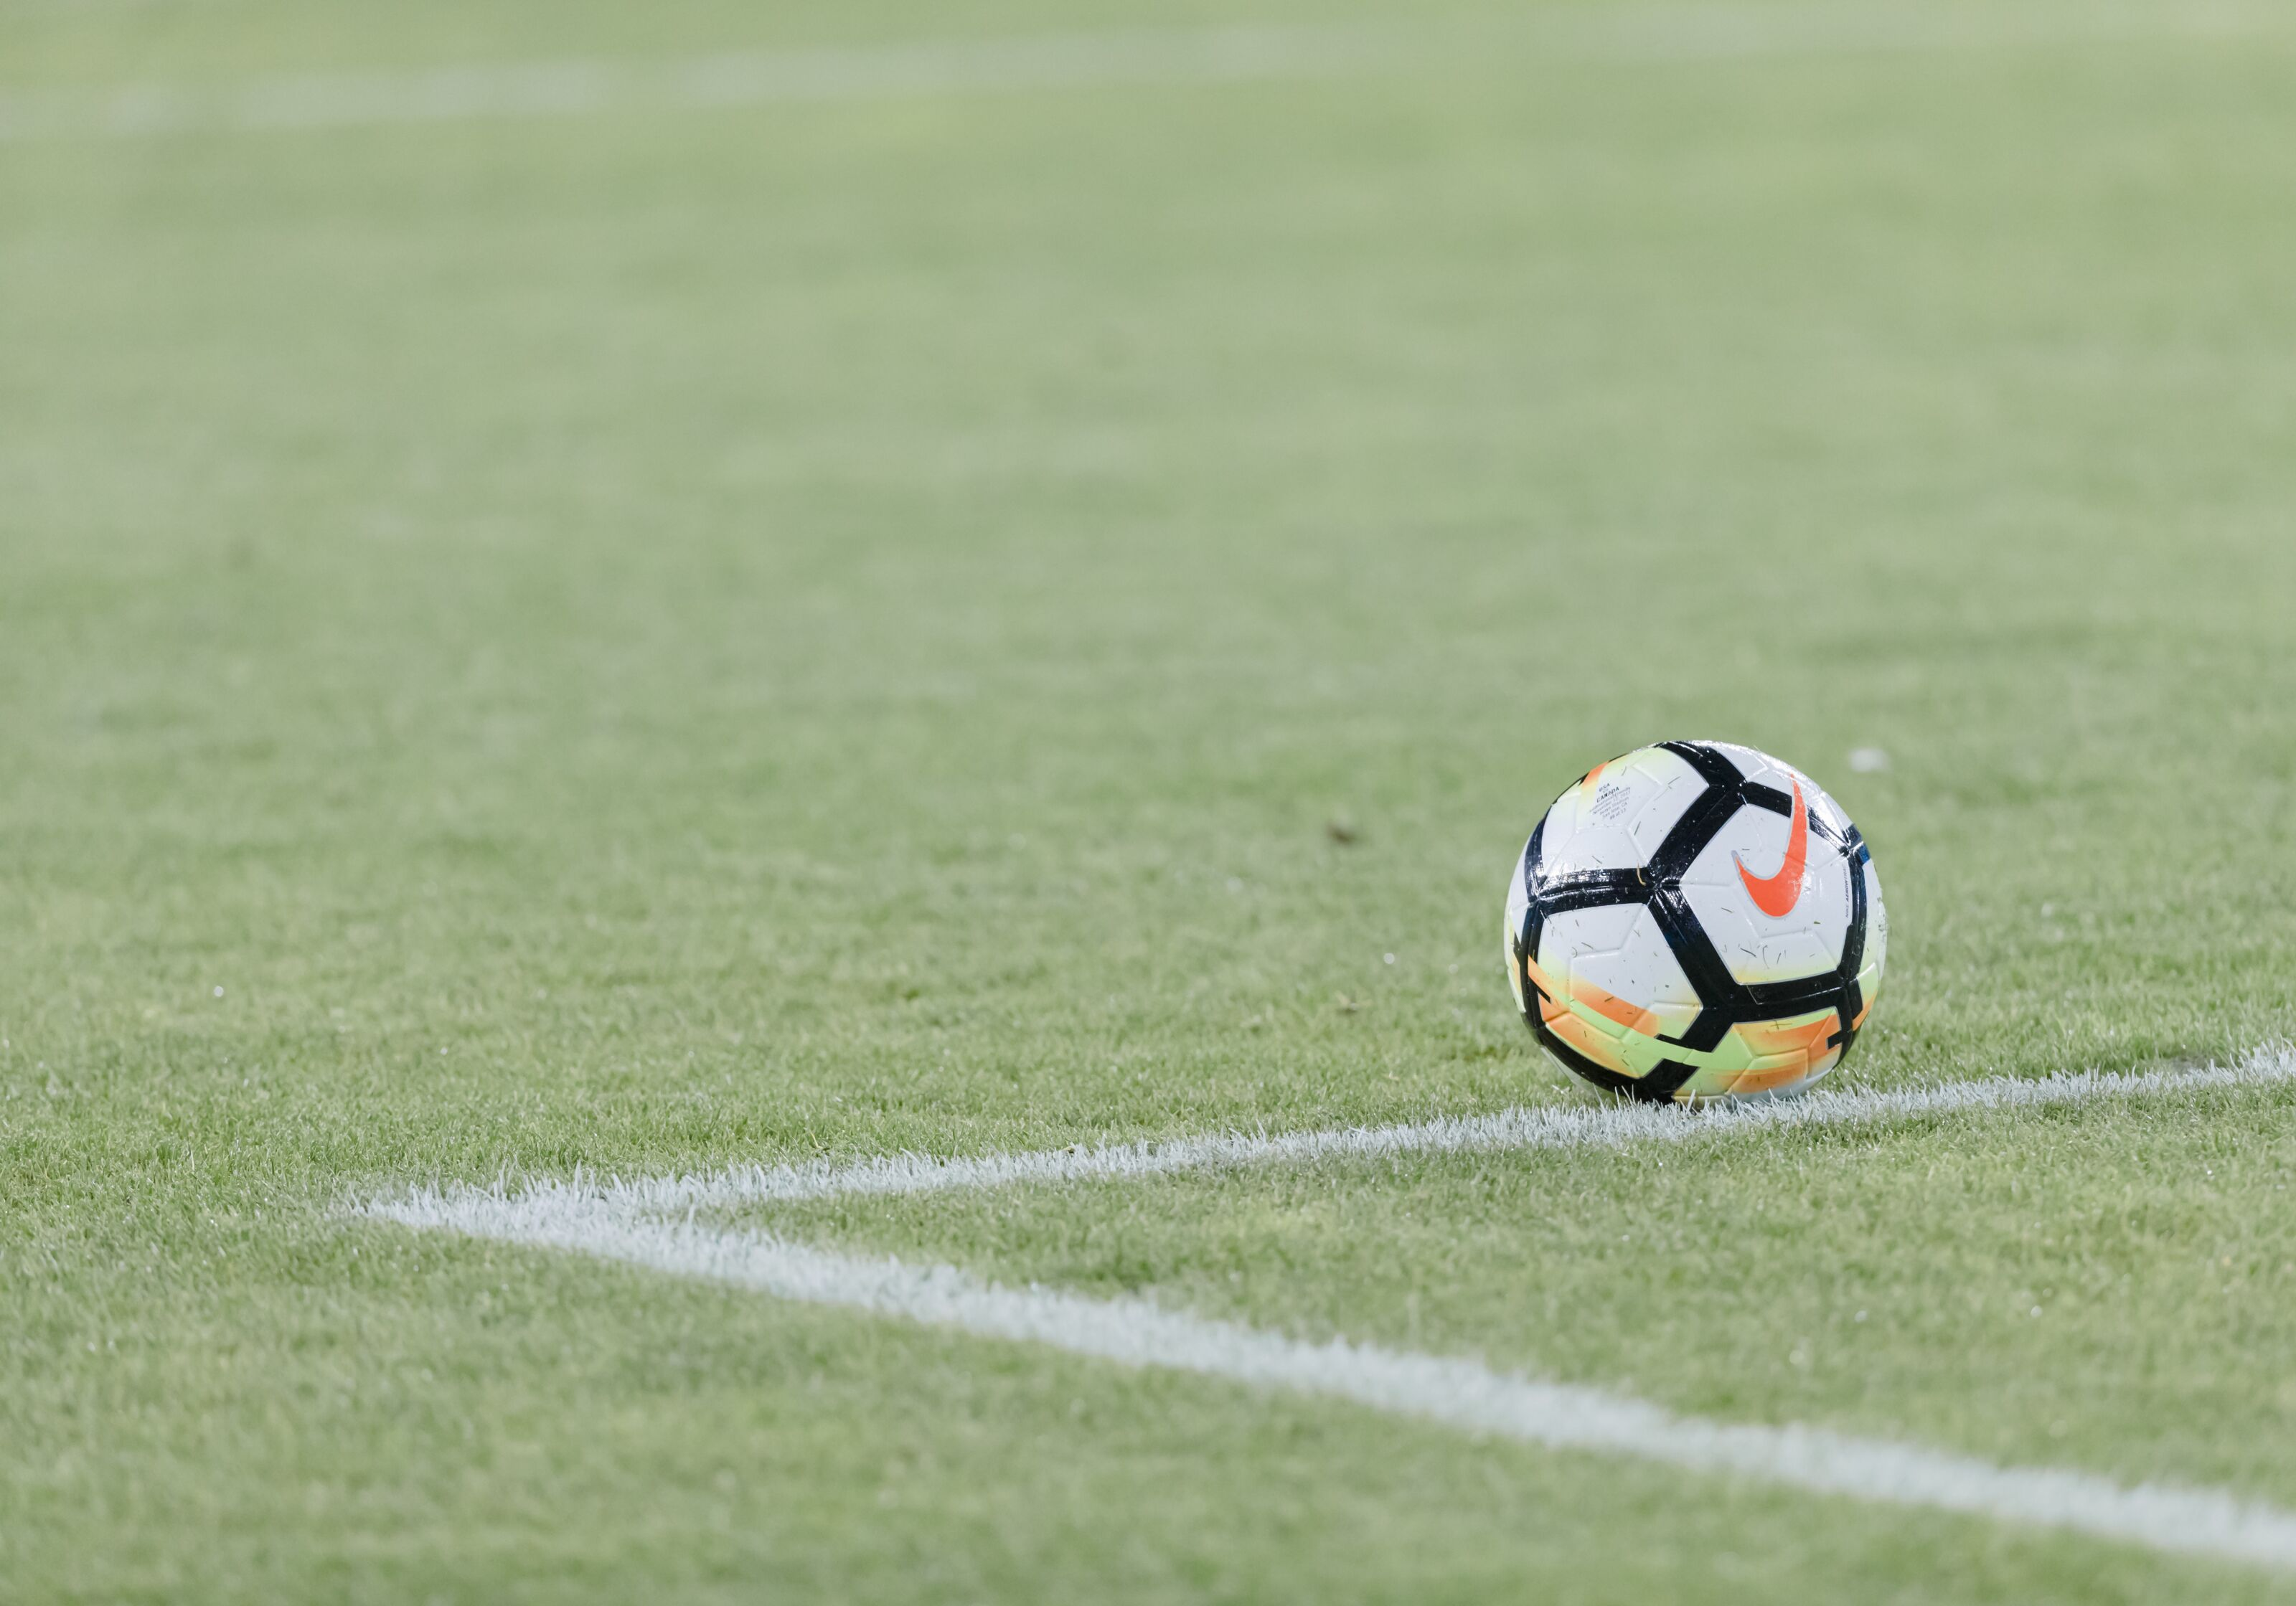 UCLA Soccer: The women's team announce their 2019 schedule